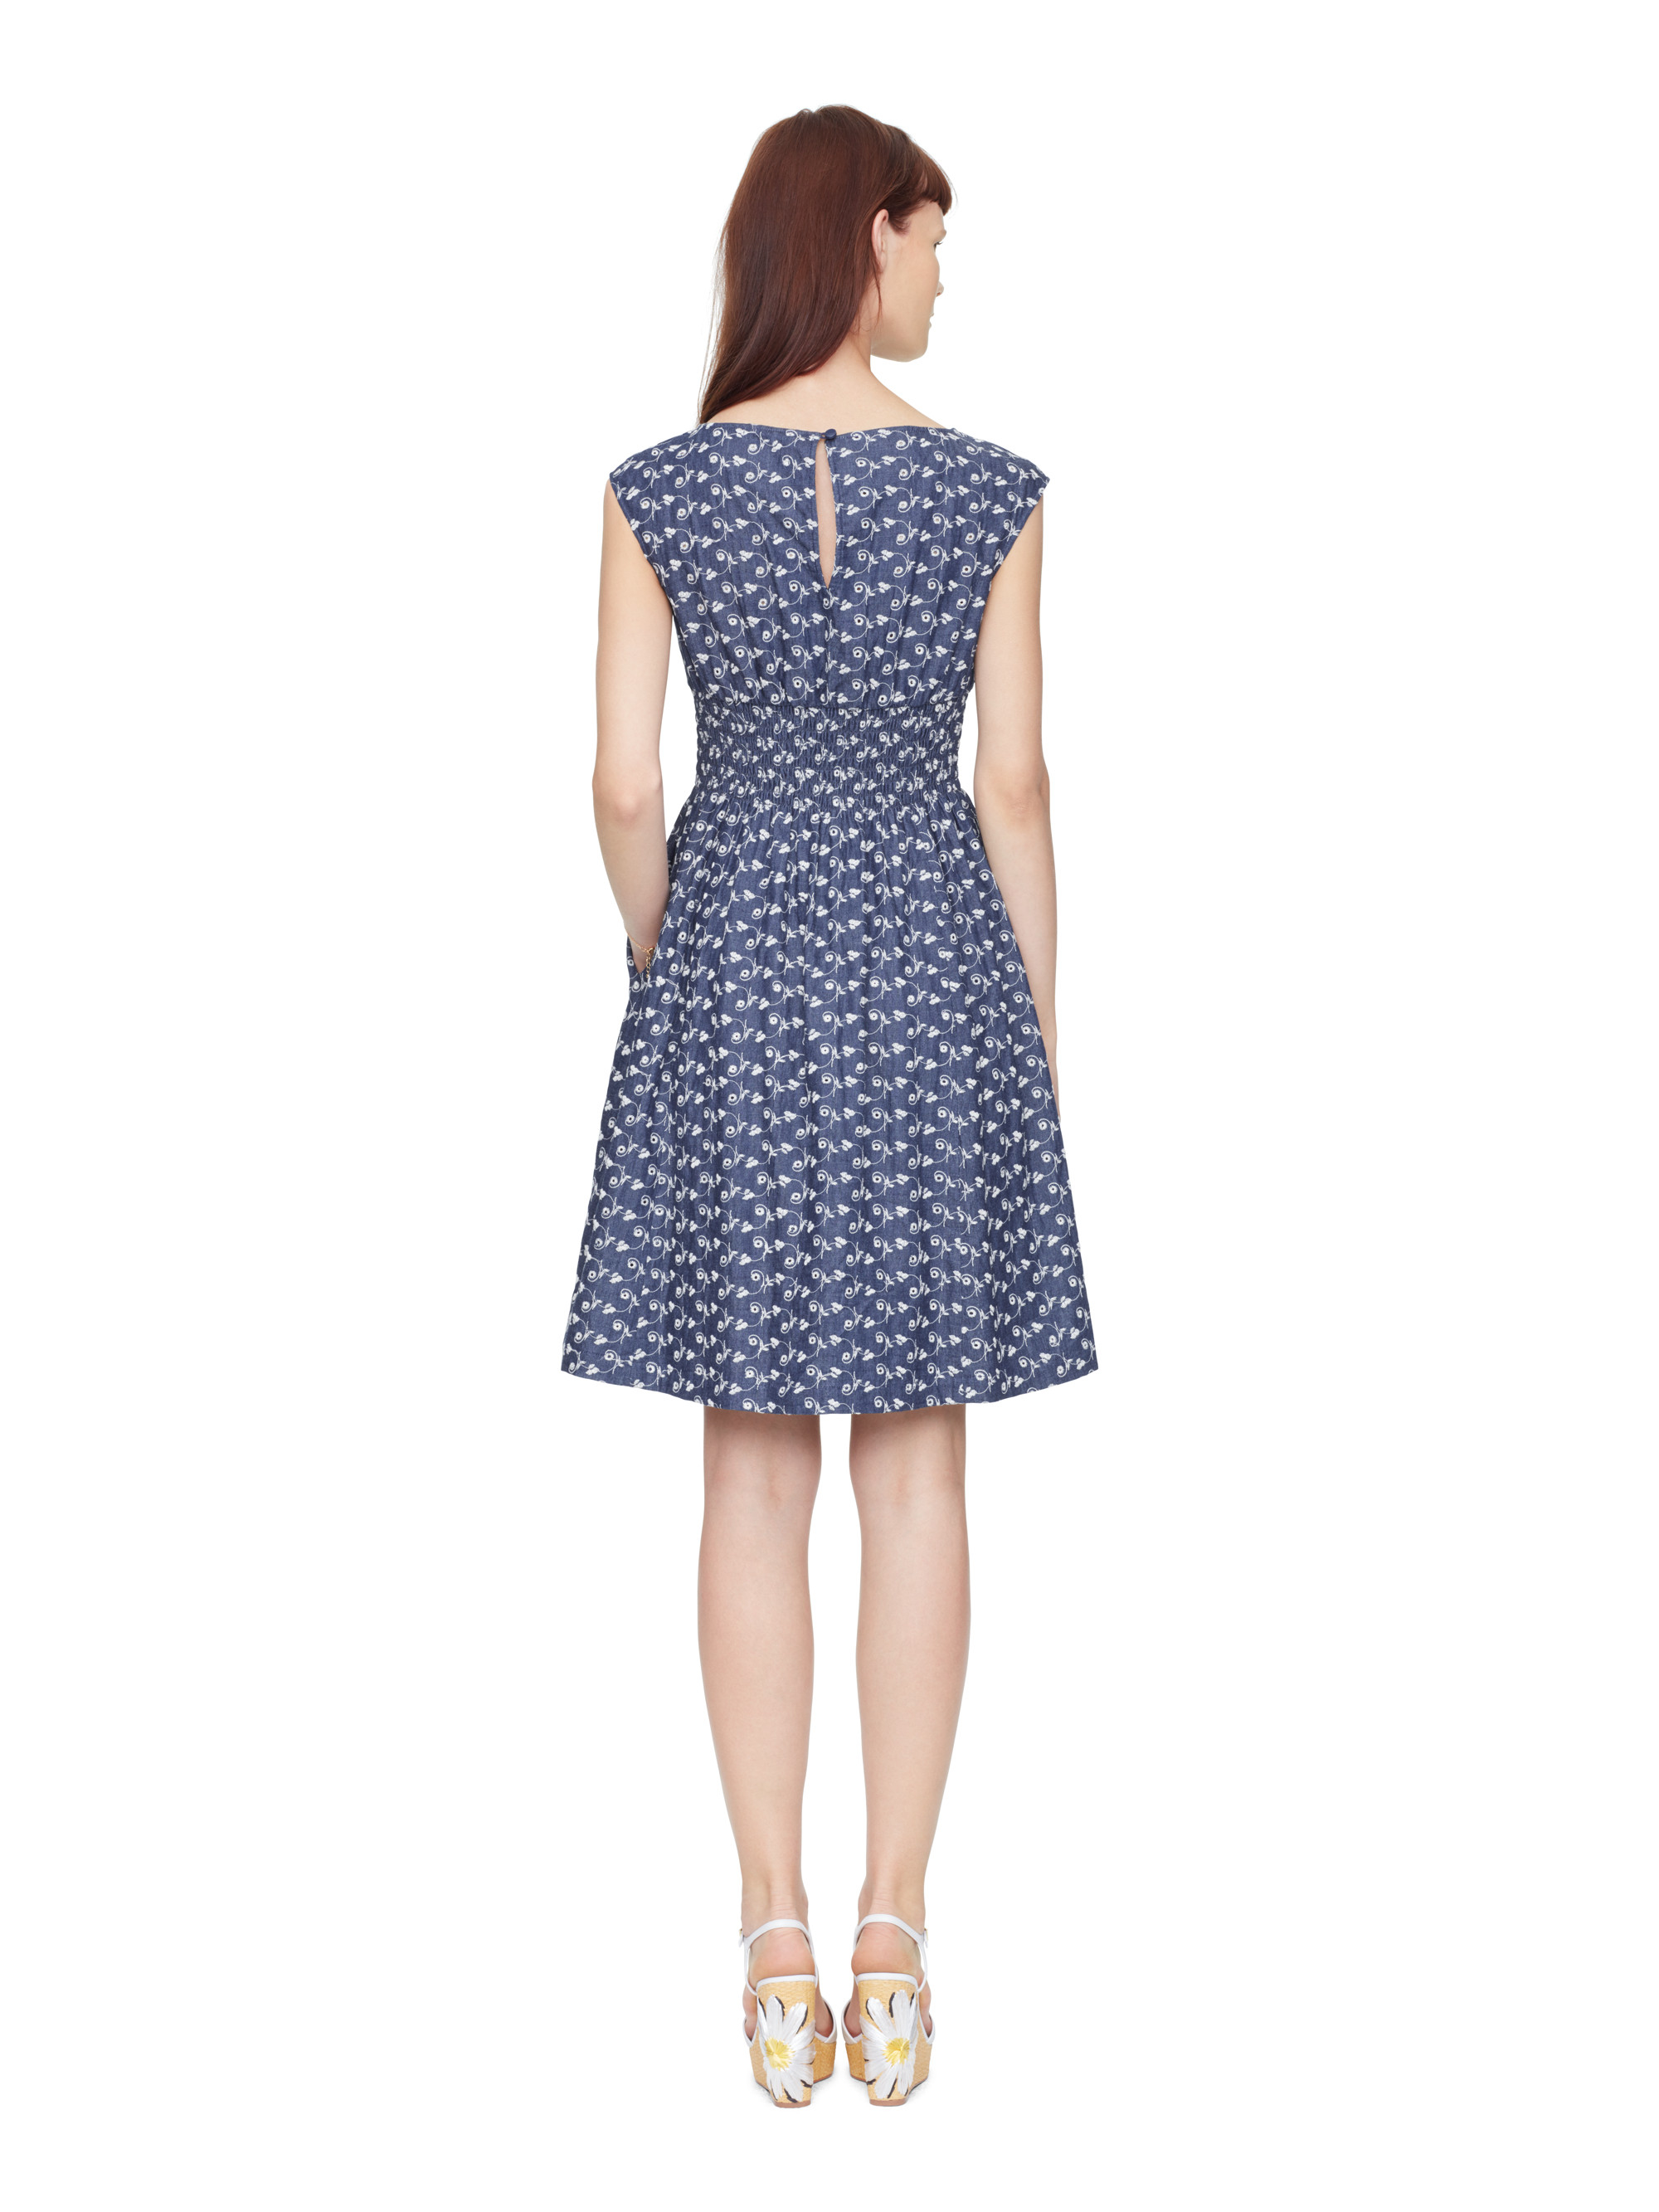 Lyst Kate Spade New York Chambray Blaire Dress In Blue